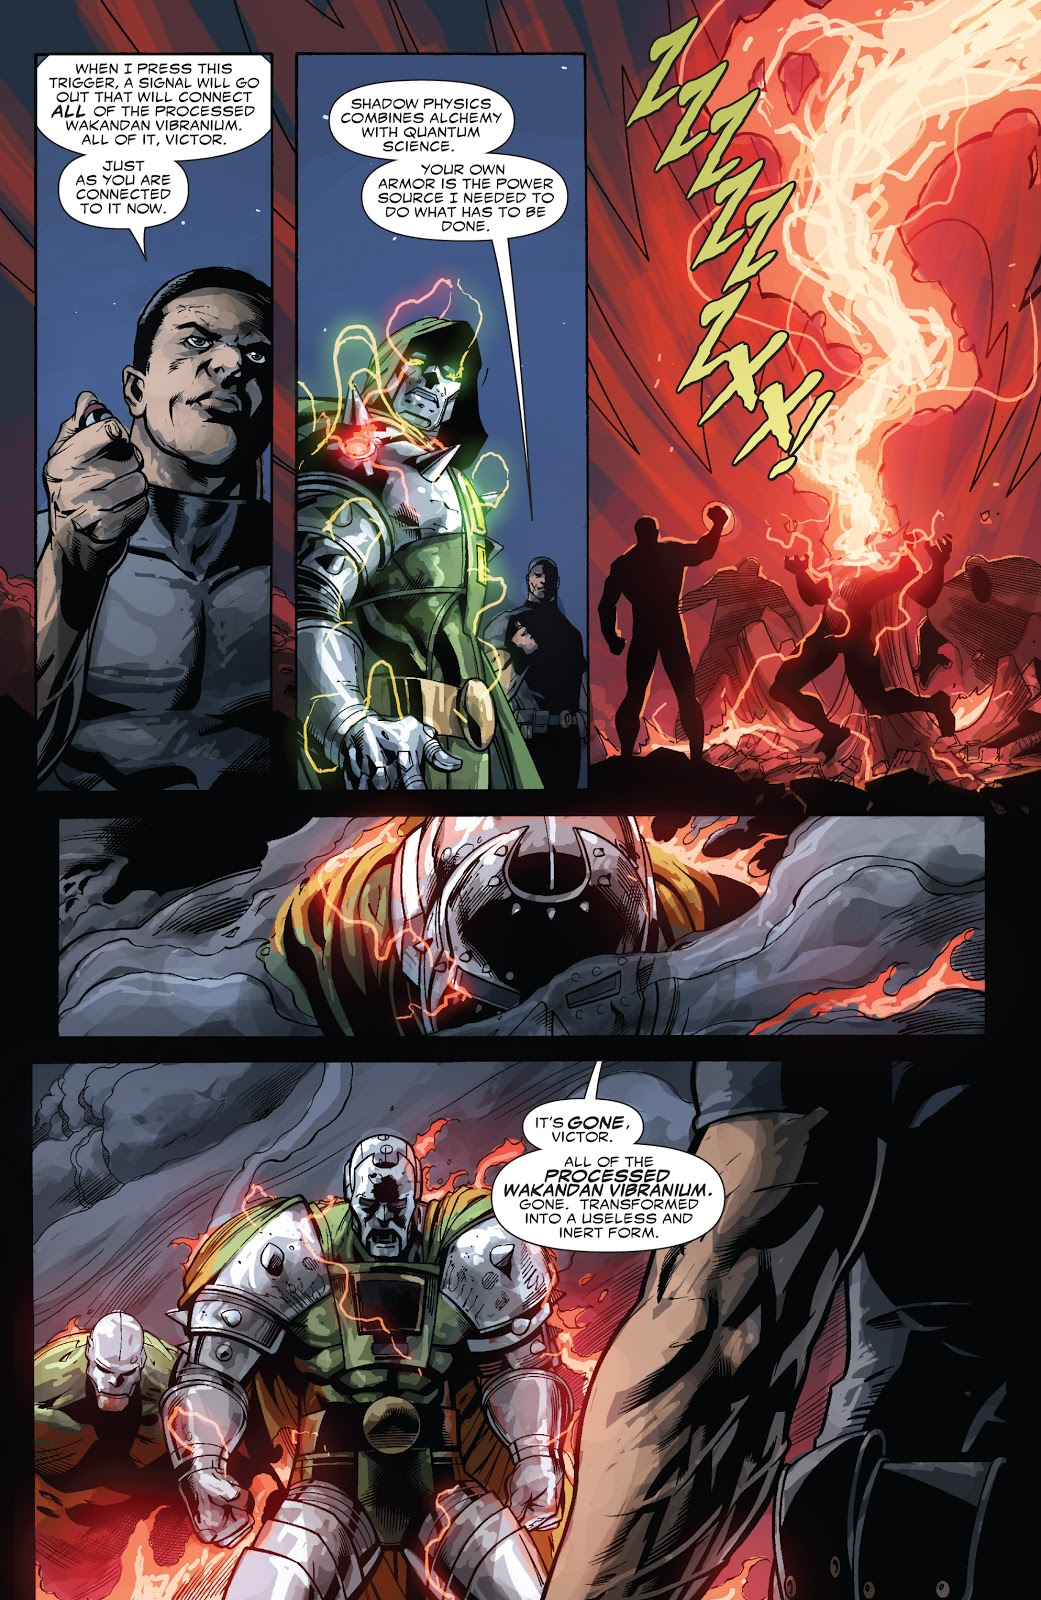 In 'Doomwar' (2010) #6, T'Challa uses a trigger that renders all processed Vibranium inert.